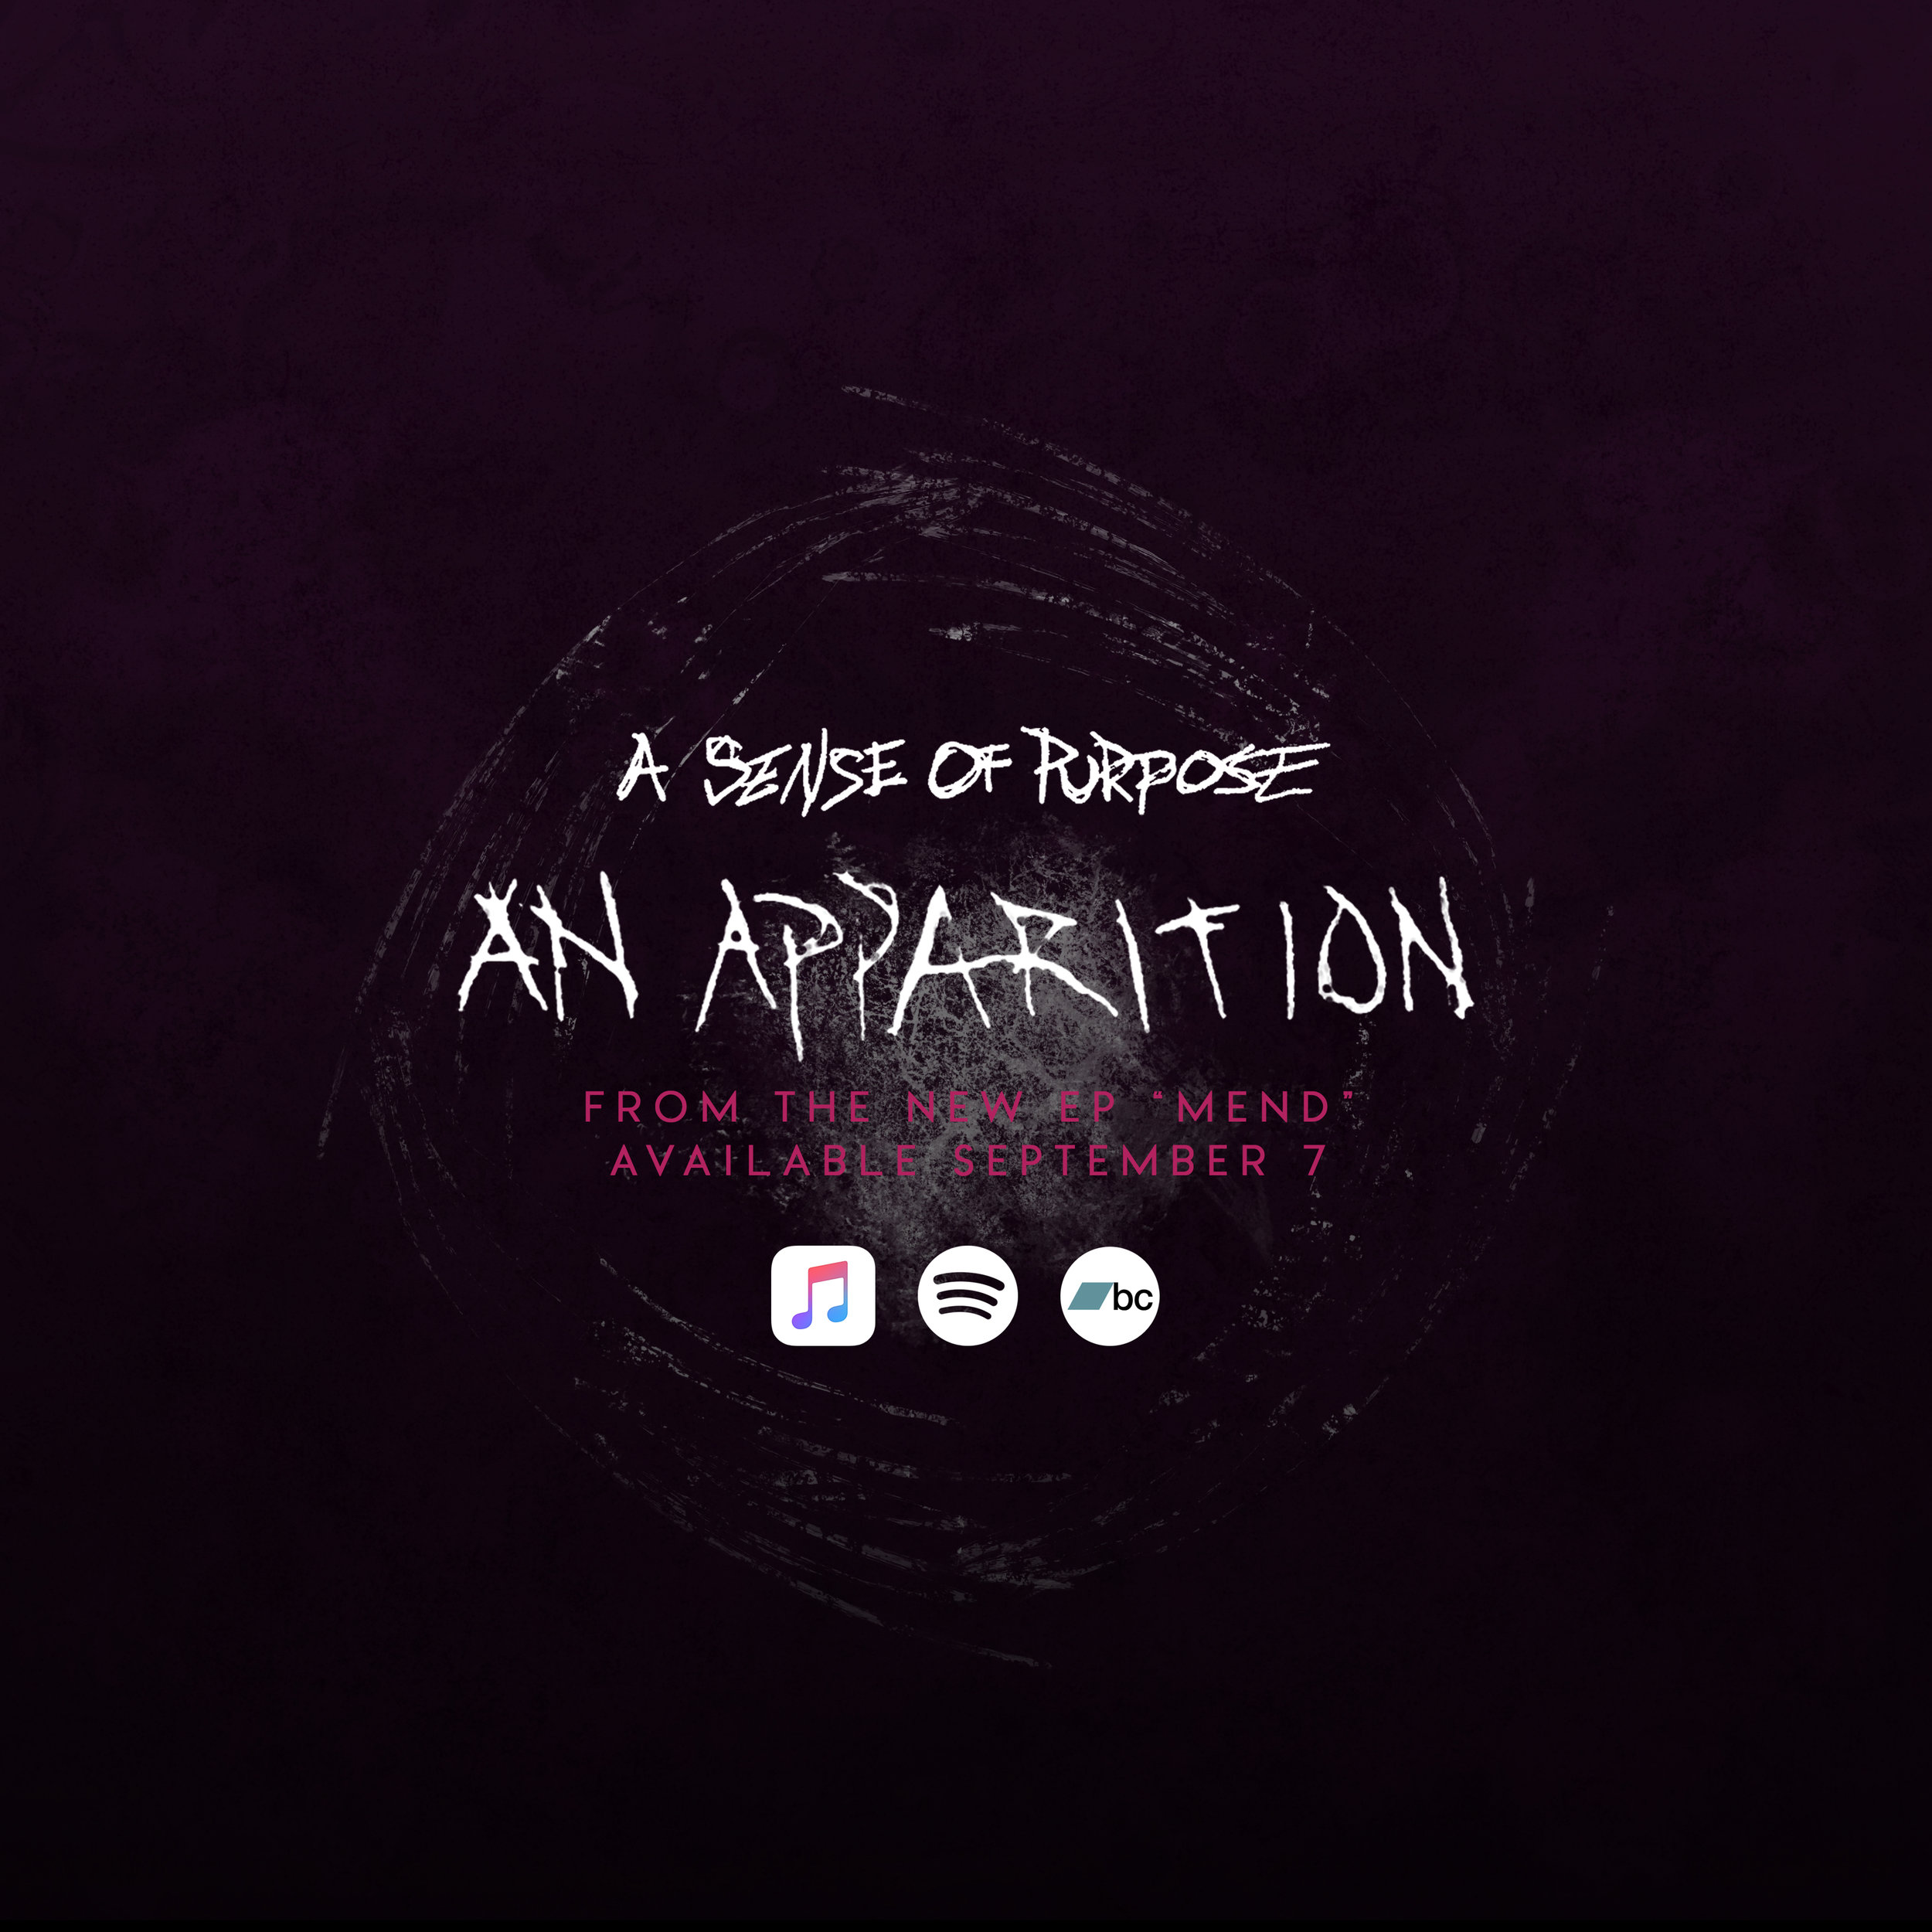 AN APPARITION - SINGLE RELEASE GRAPHIC.jpg